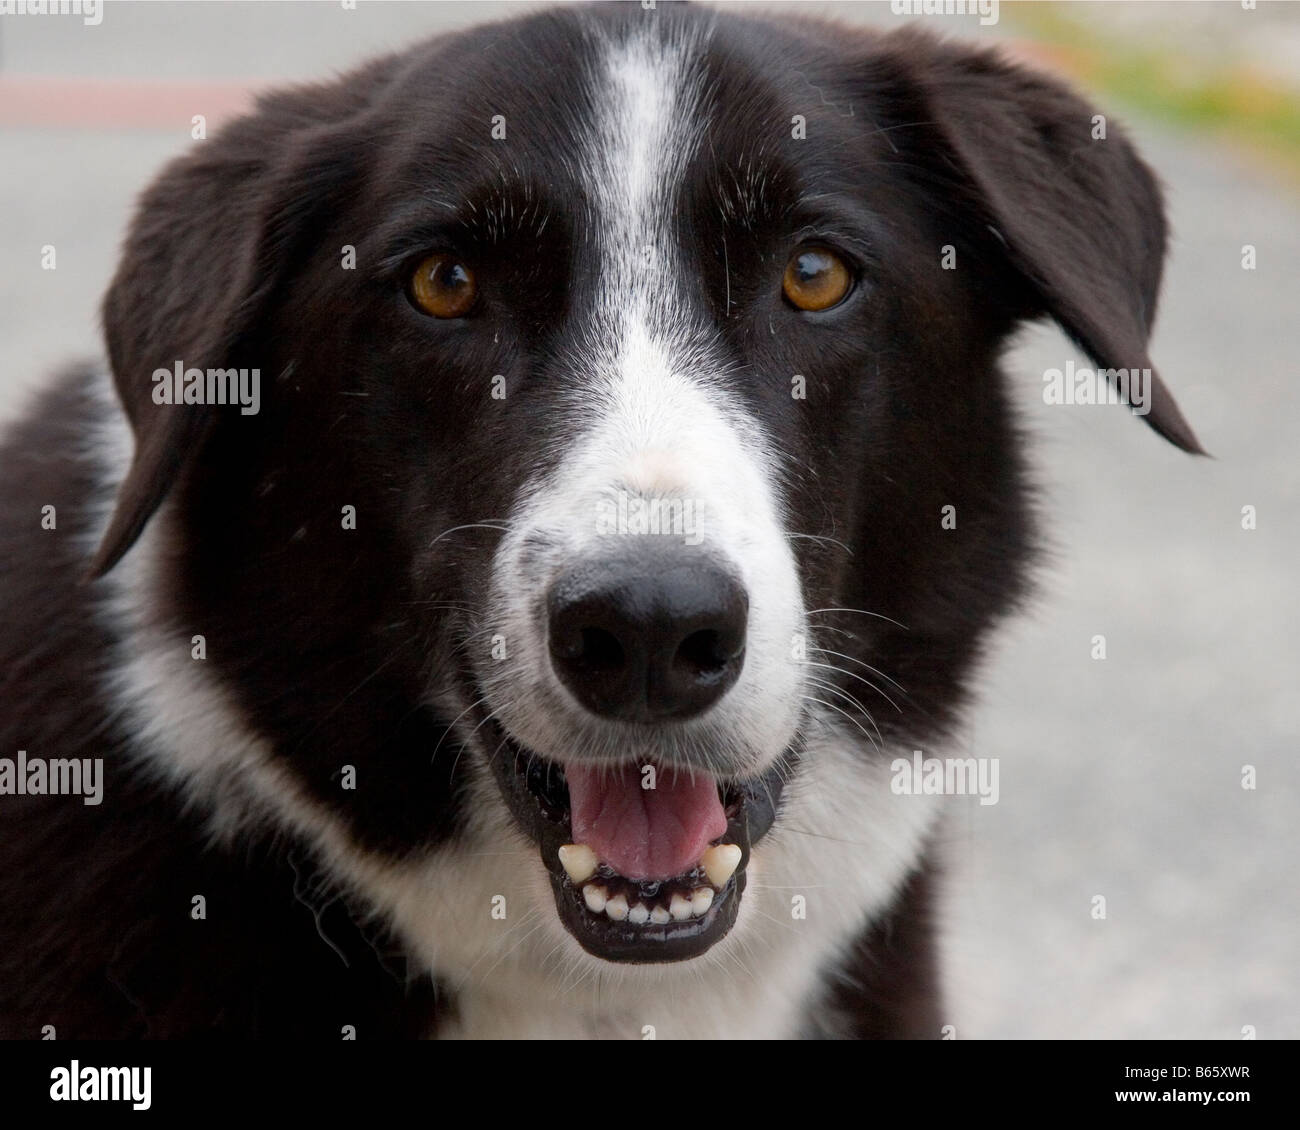 Happy dog Border Collie dog smiling at the camera. - Stock Image